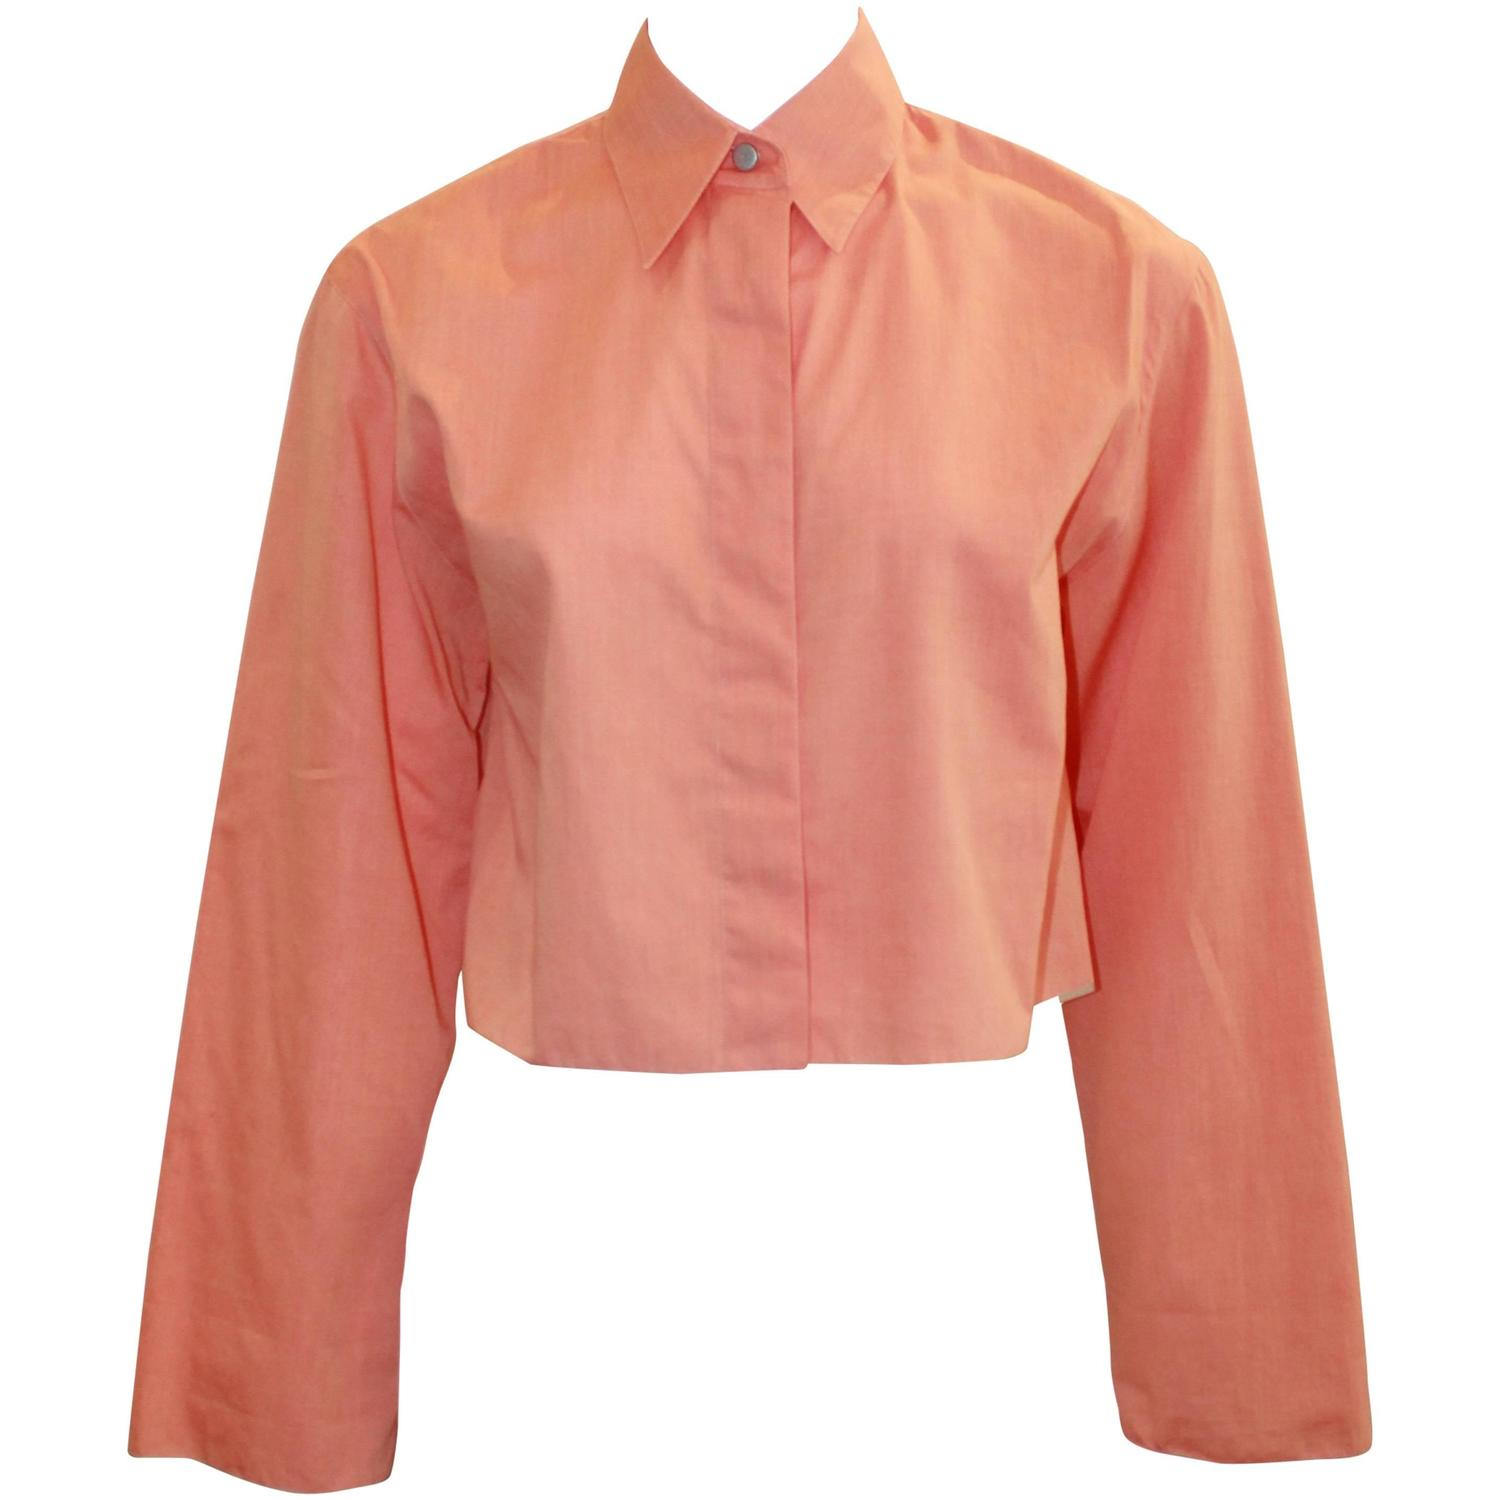 chanel vintage orange cotton collared cropped top 36